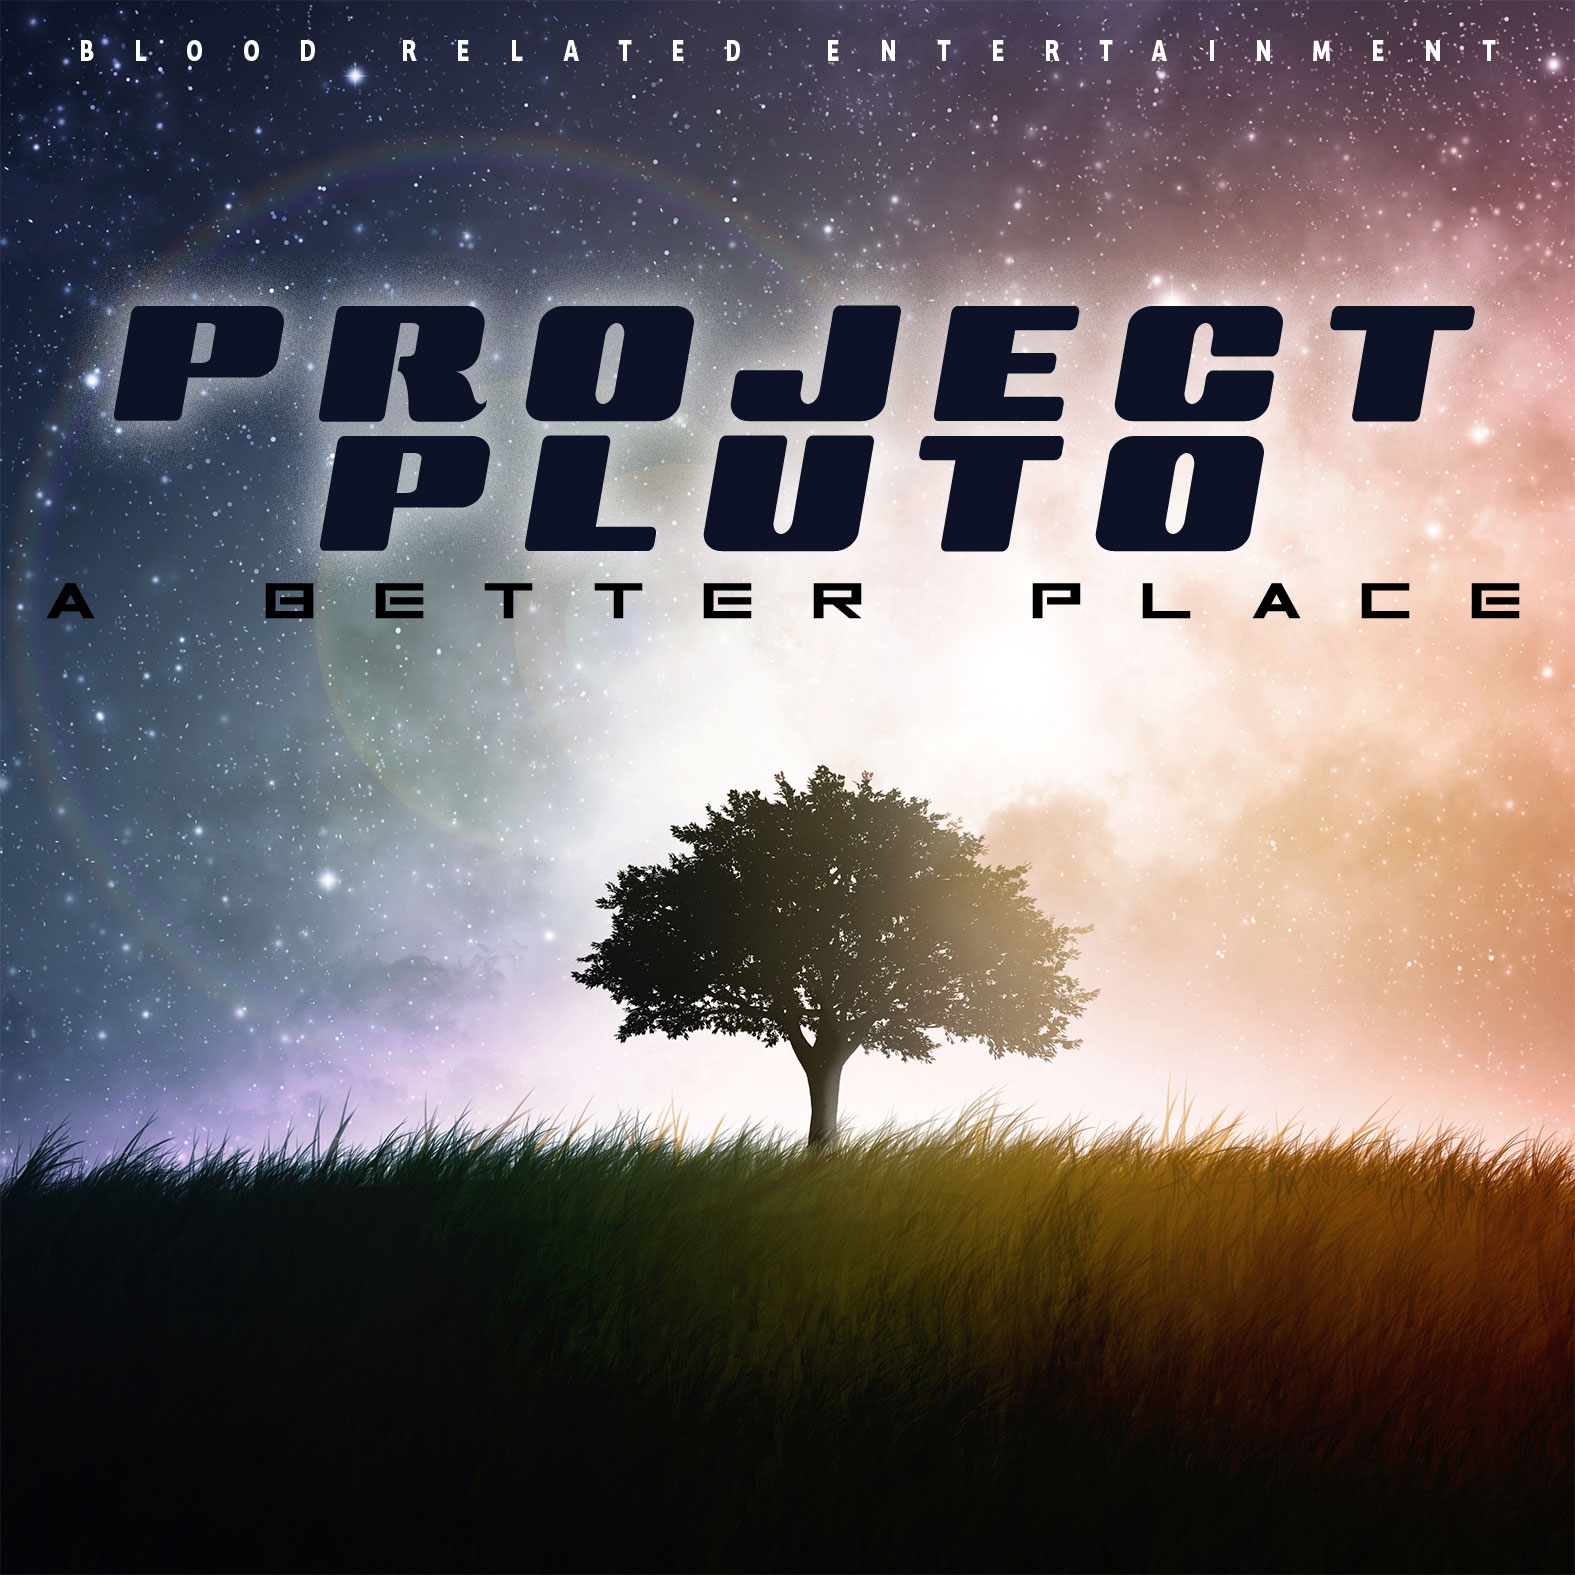 A Better Place by Project Pluto